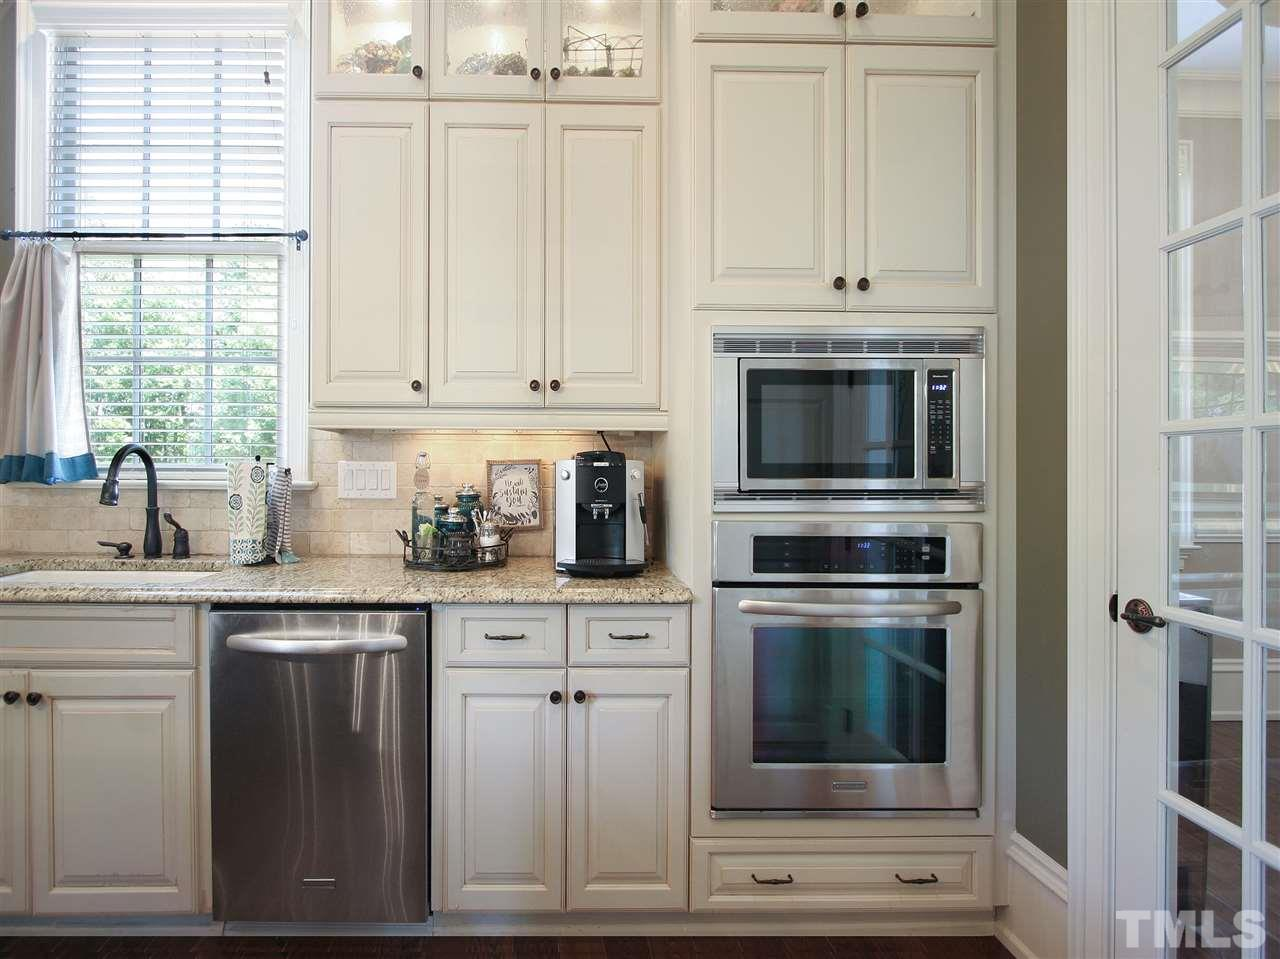 In addition to the range, the kitchen has stainless-steel built-in double wall ovens. Window over the sink overlooks the front lawn. The verdant tree-lined 14th tee and fairway are across the street.